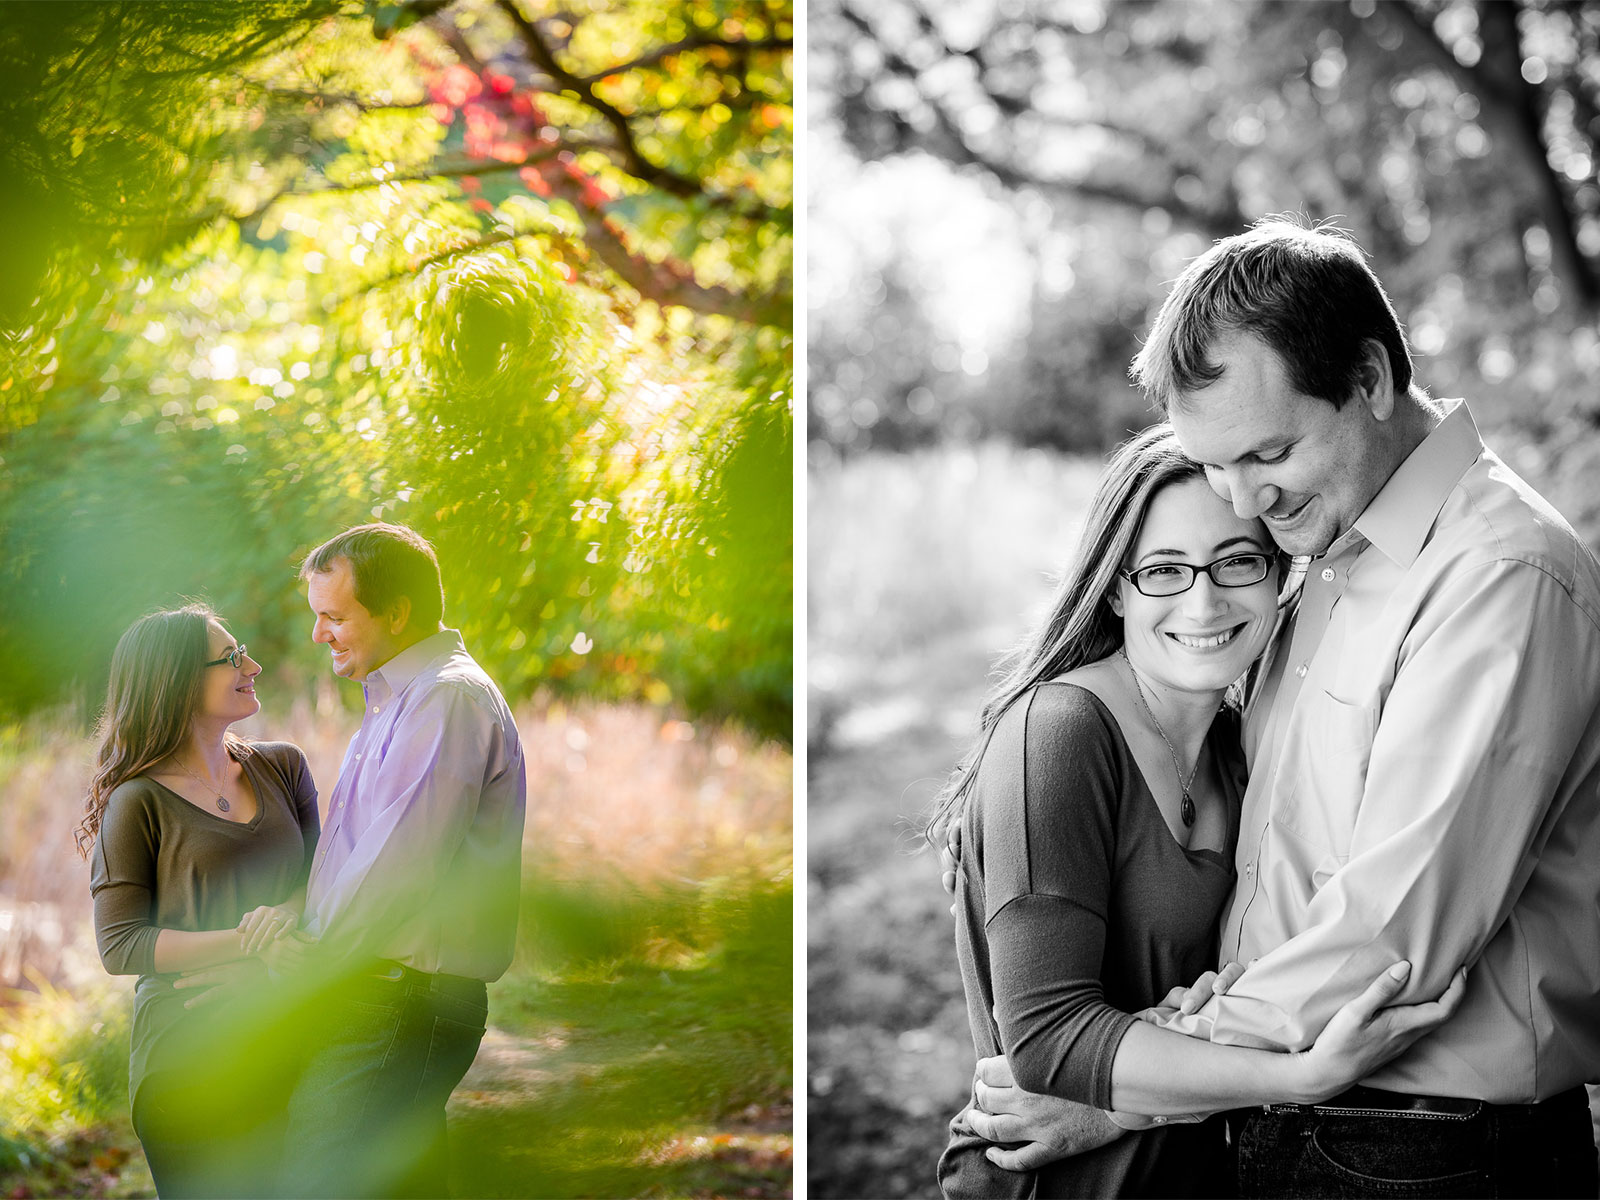 Eric_and_Christy_Photography_Blog_Julie_Adam-24-25